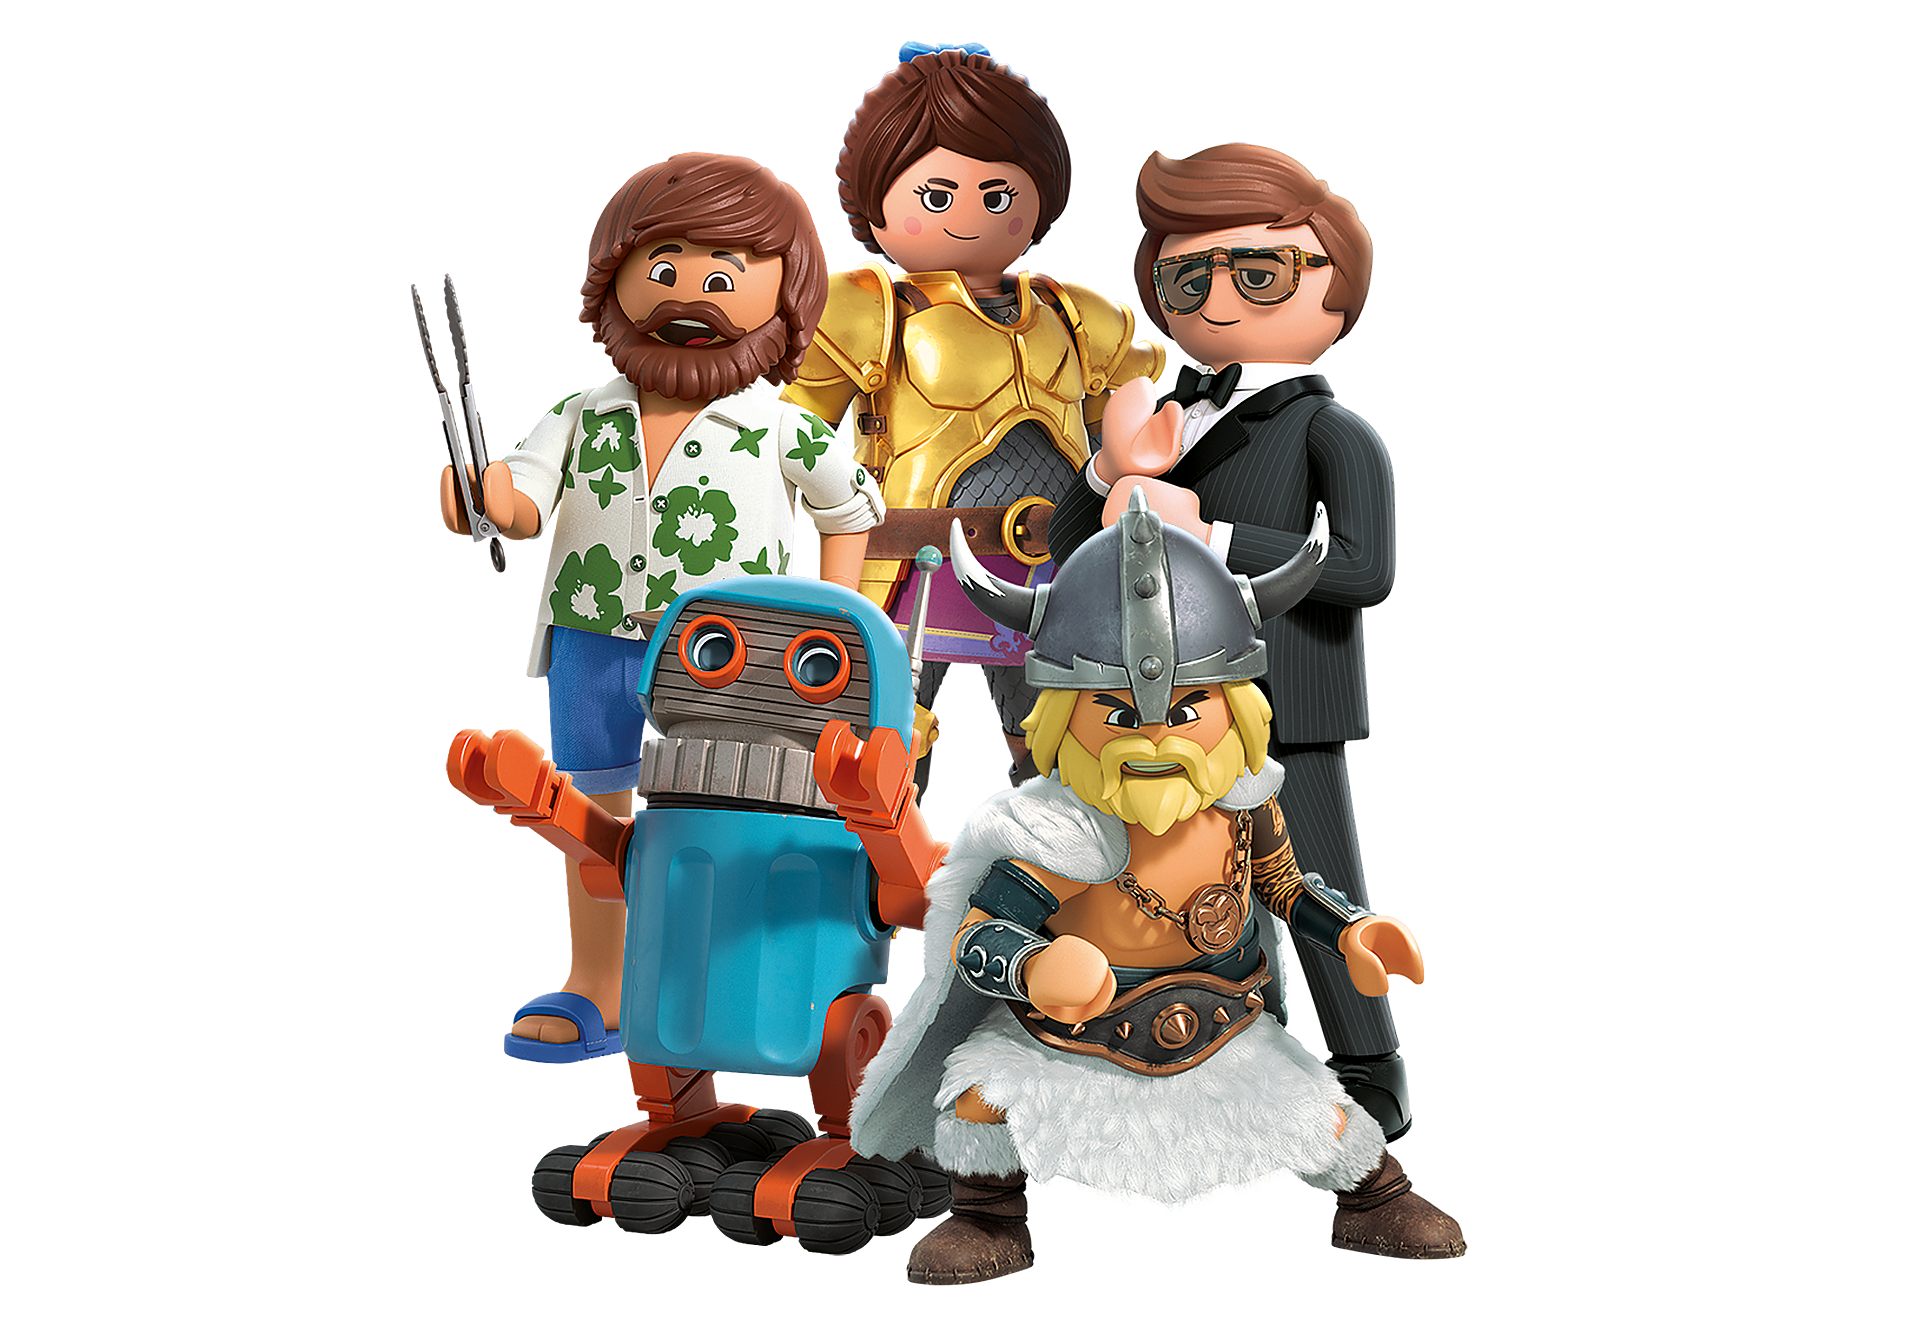 70069 PLAYMOBIL:THE MOVIE Figures (Series 1) zoom image1